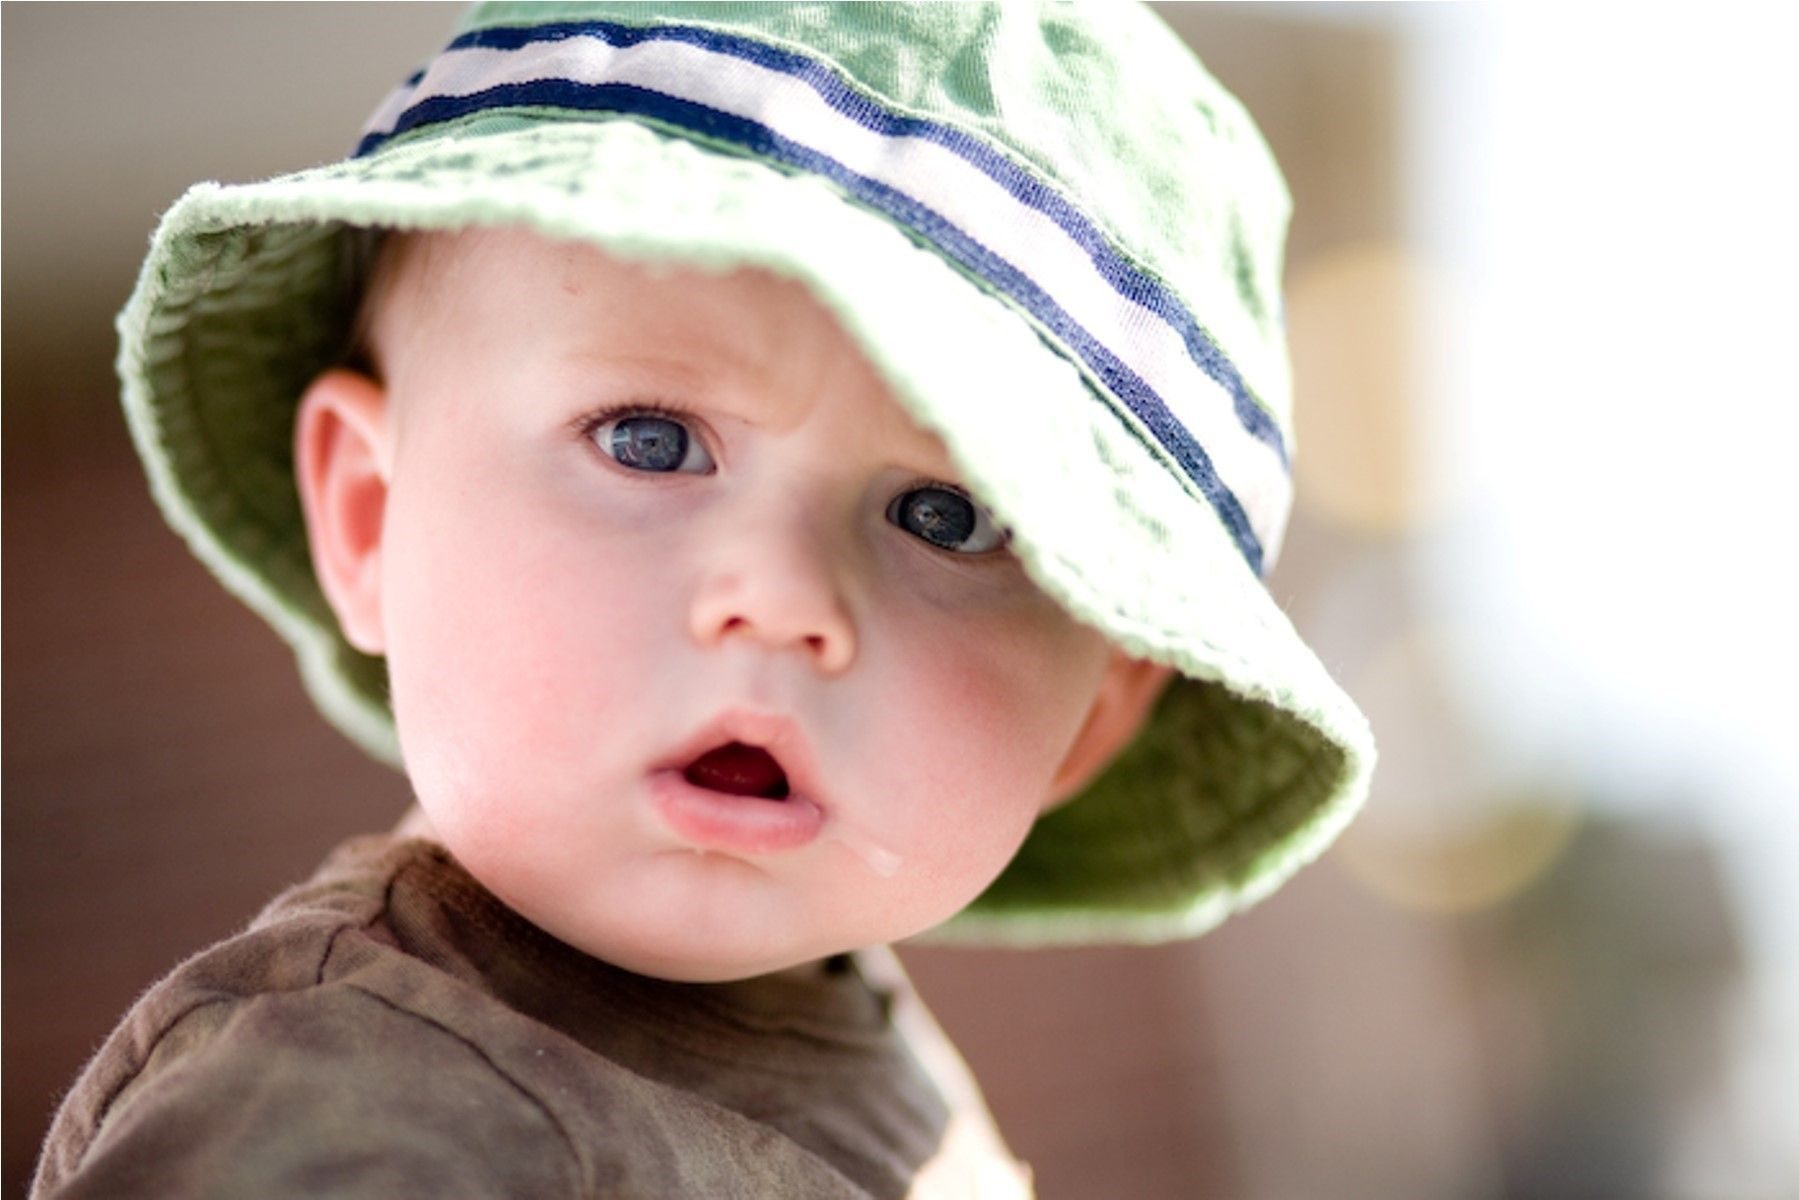 Cute Baby Boy Wallpapers For Facebook Profile Mixed Kids Cute Baby Boy Cute Boys